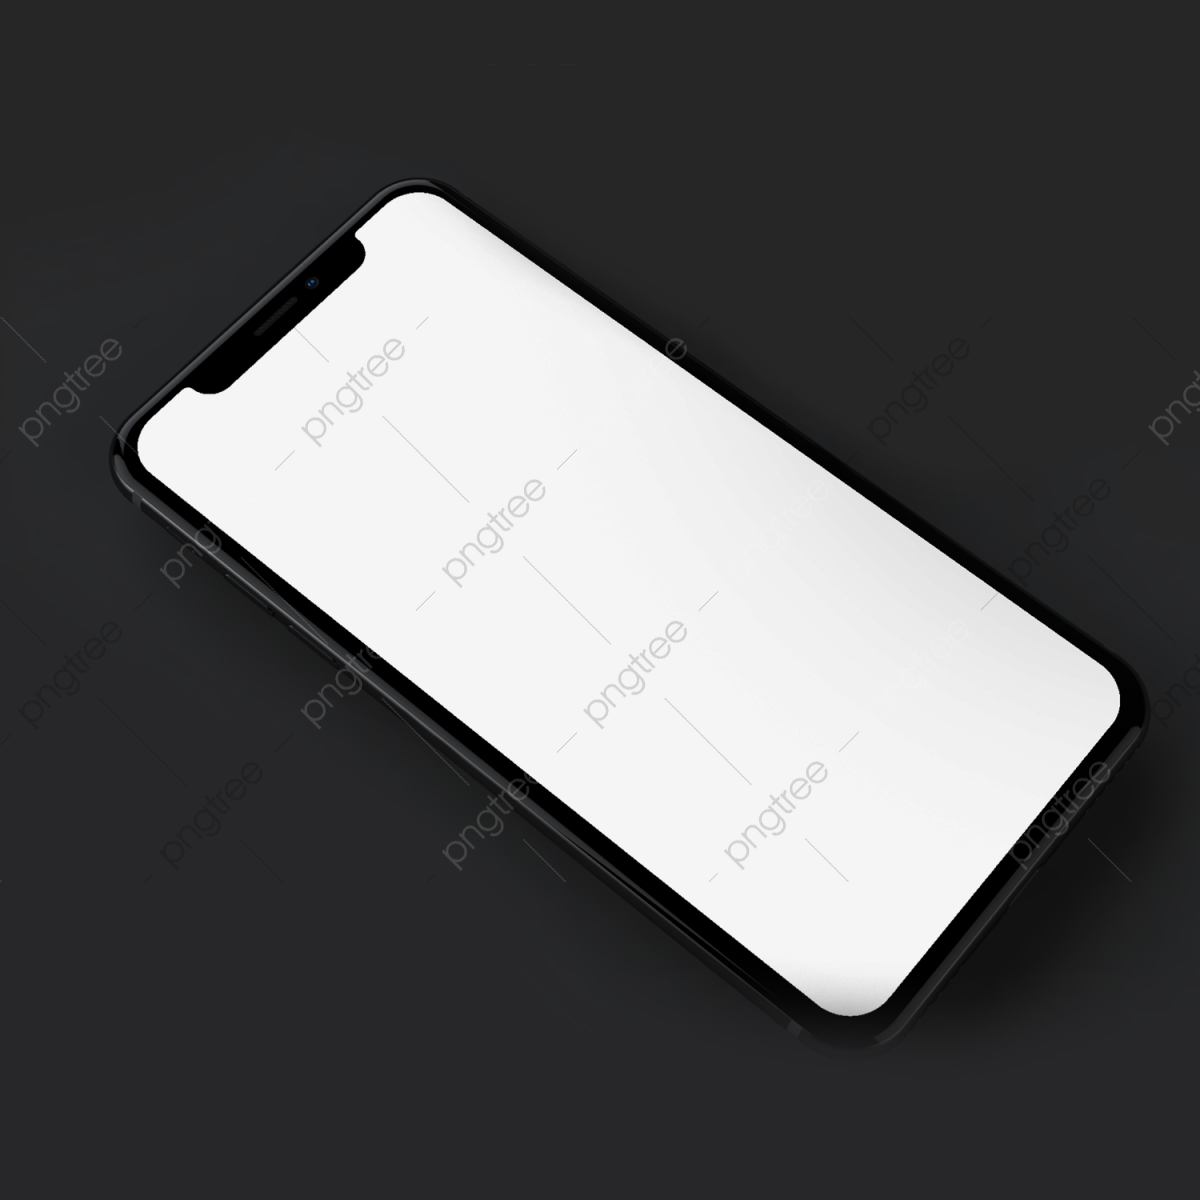 Iphone X Mockup With Black Background Mobile Phone